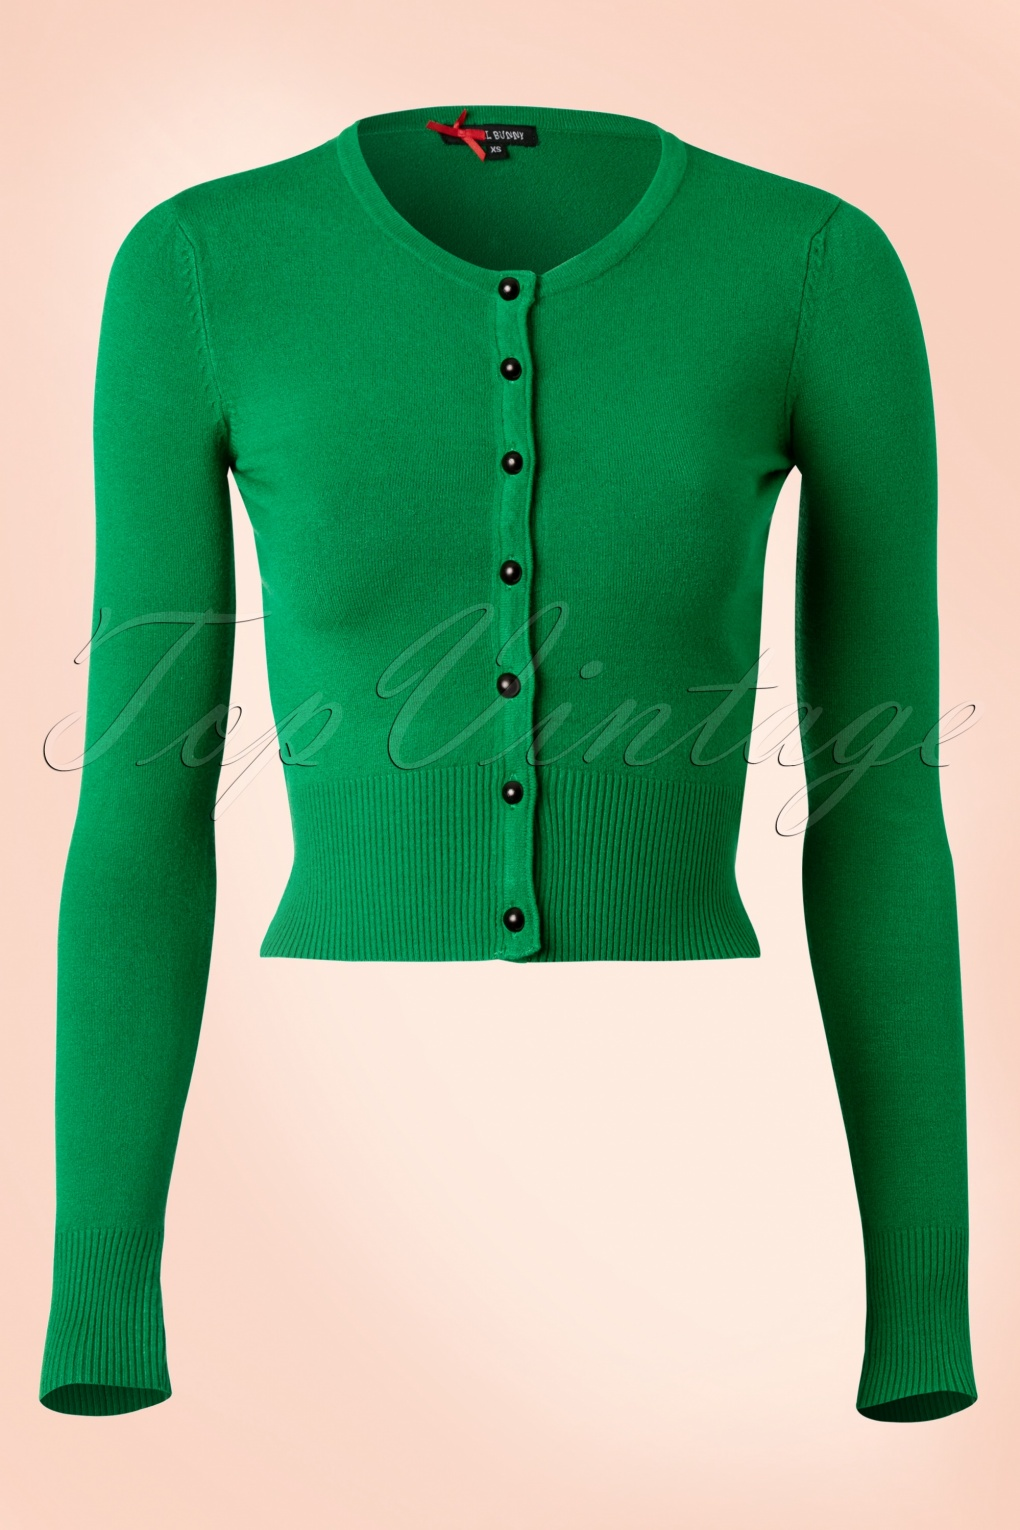 Shop for and buy green cardigan online at Macy's. Find green cardigan at Macy's.